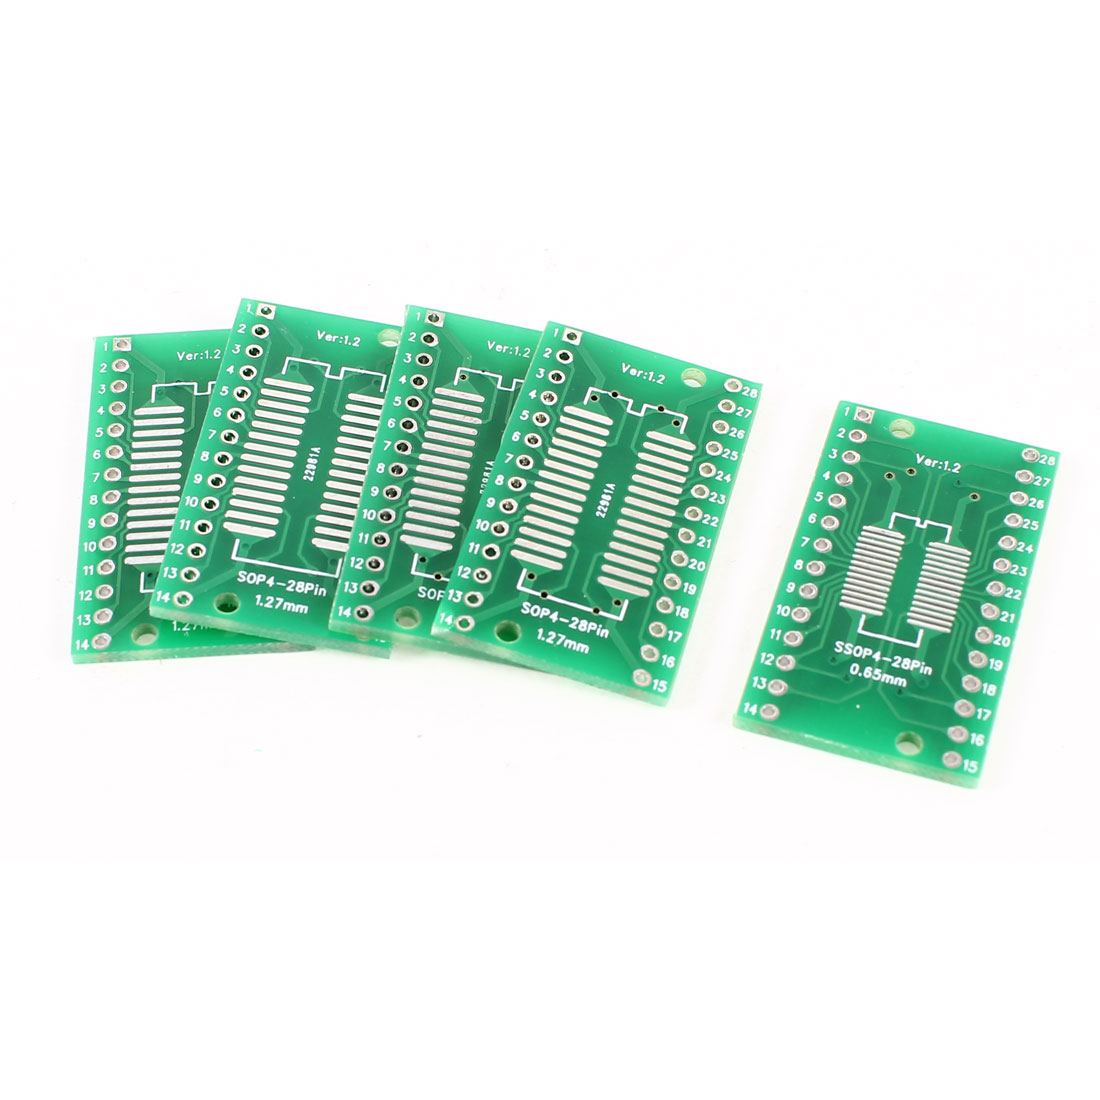 5 Pcs QFN32 QFP32 0.8mm 0.65mm Pitch DIP Double Side TFT LCD Testing FPC Adapter Board